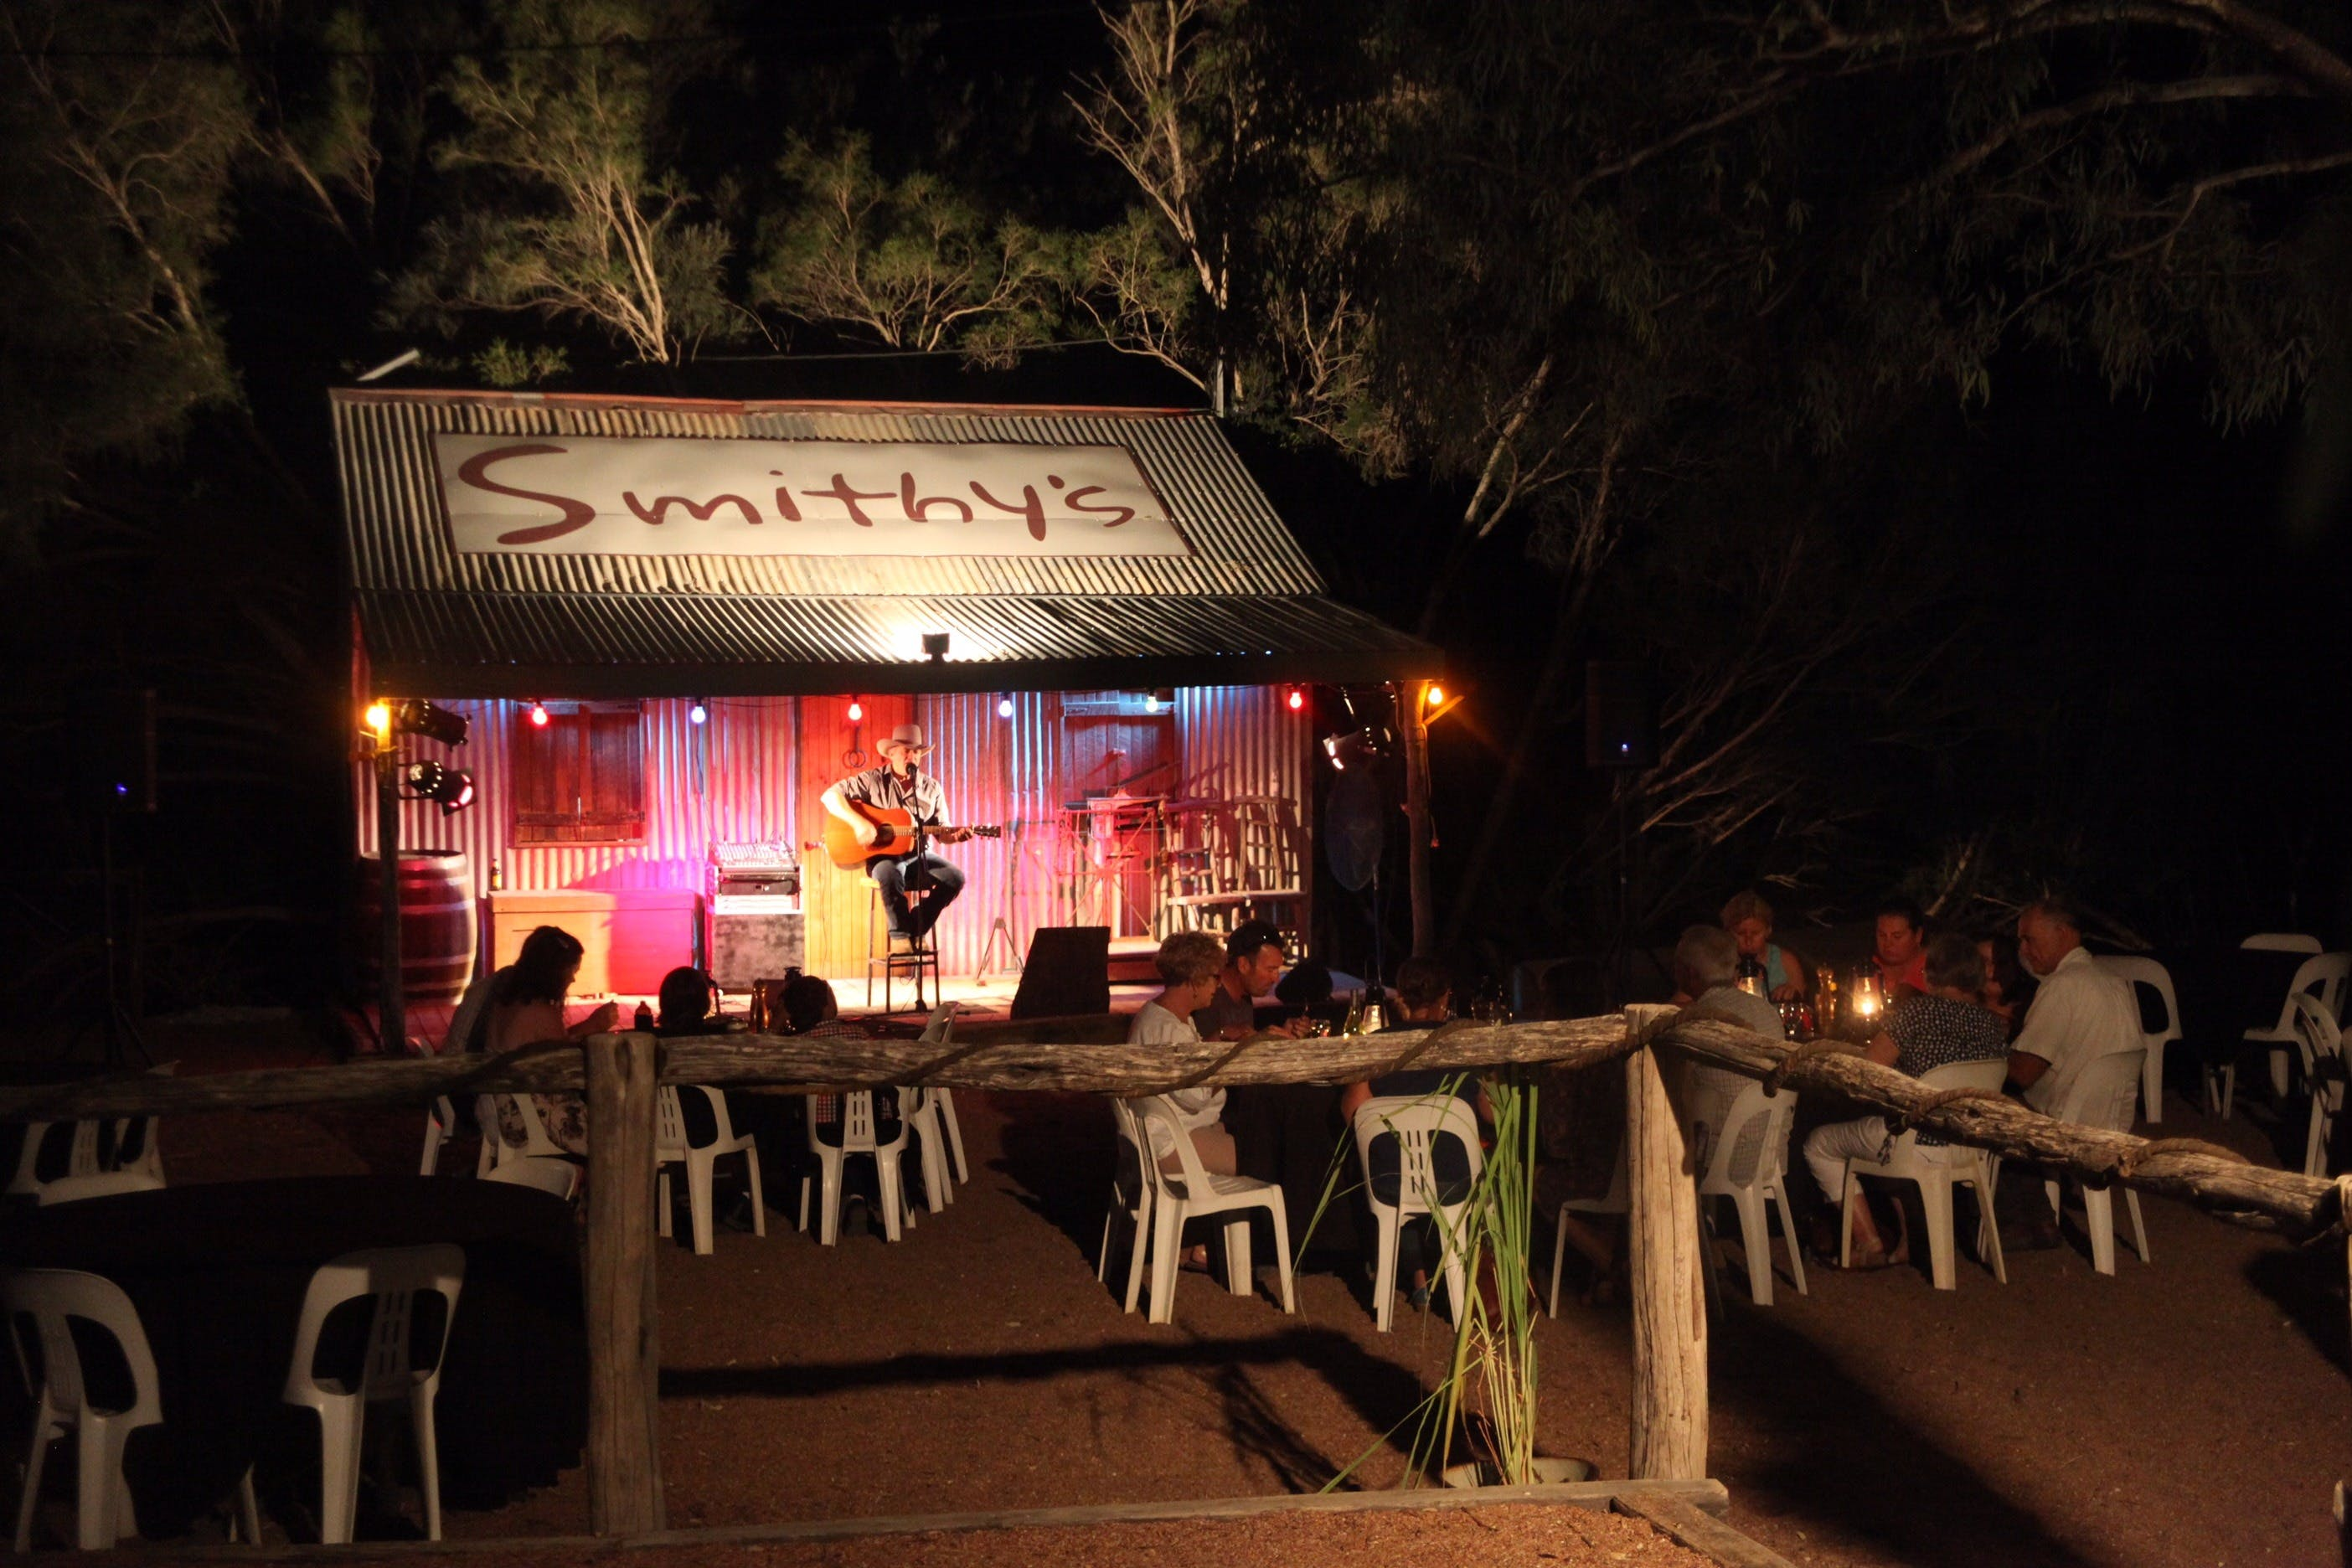 Smithy's Outback Dinner and Show - Wagga Wagga Accommodation